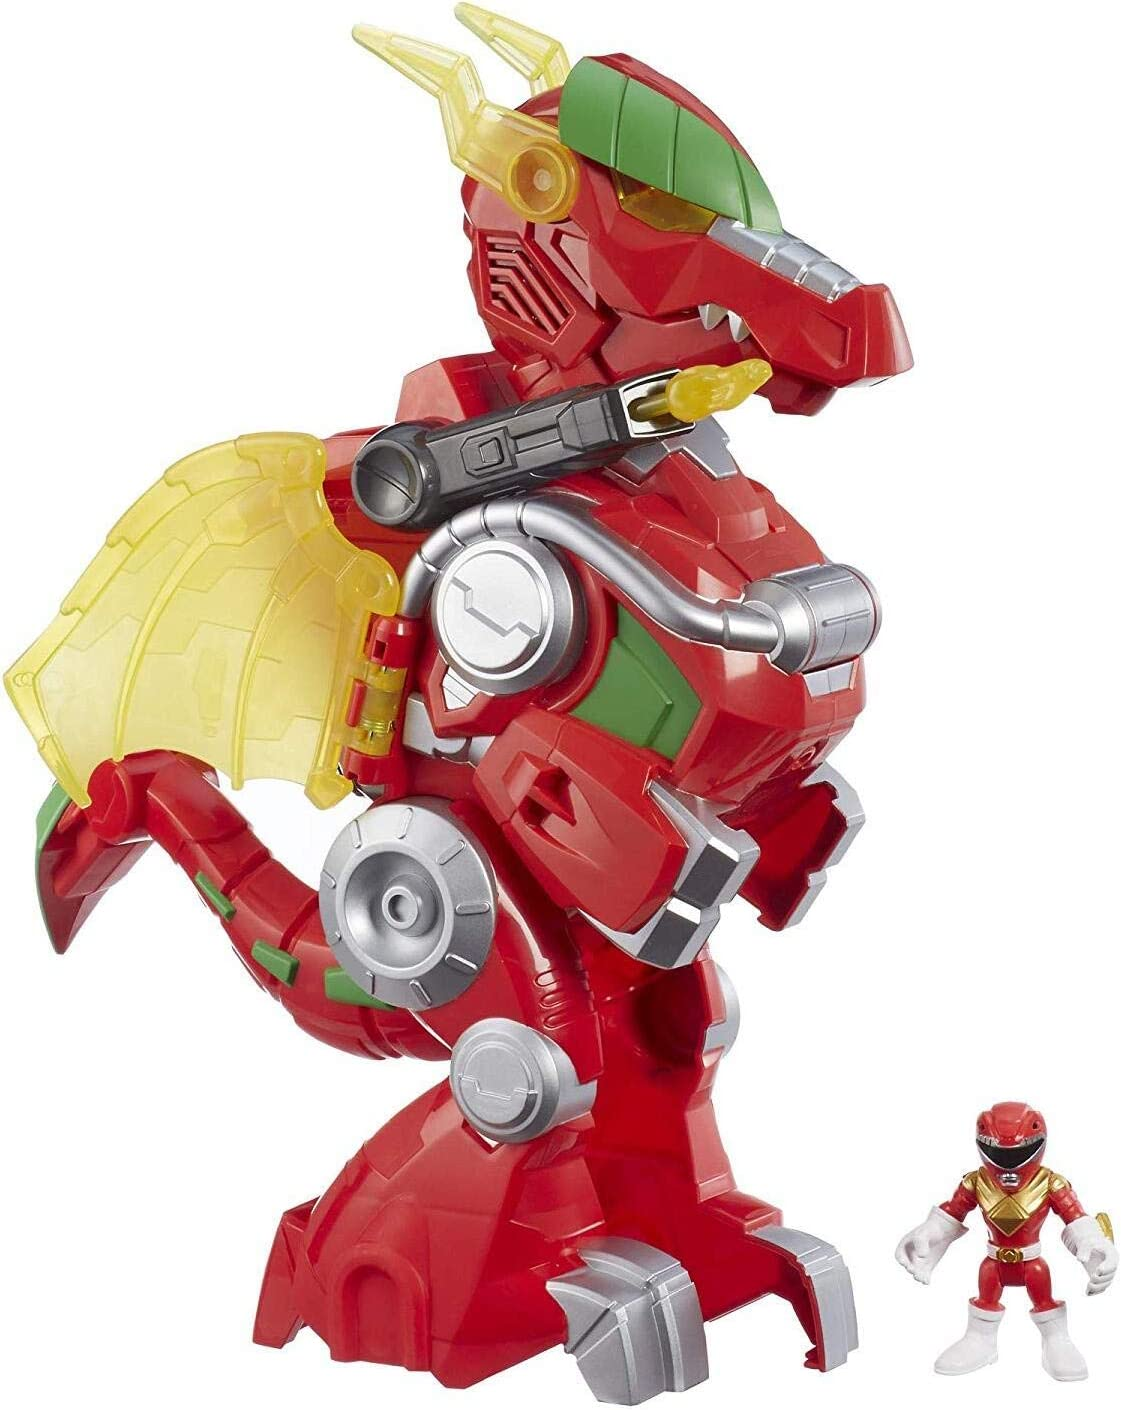 "Playskool Heroes Power Rangers Red Ranger & Dragon Thunderzord, 3"" Action Figure, 14"" Zord, Lights & Sounds, Collectible Toys for Kids Ages 3 & Up"